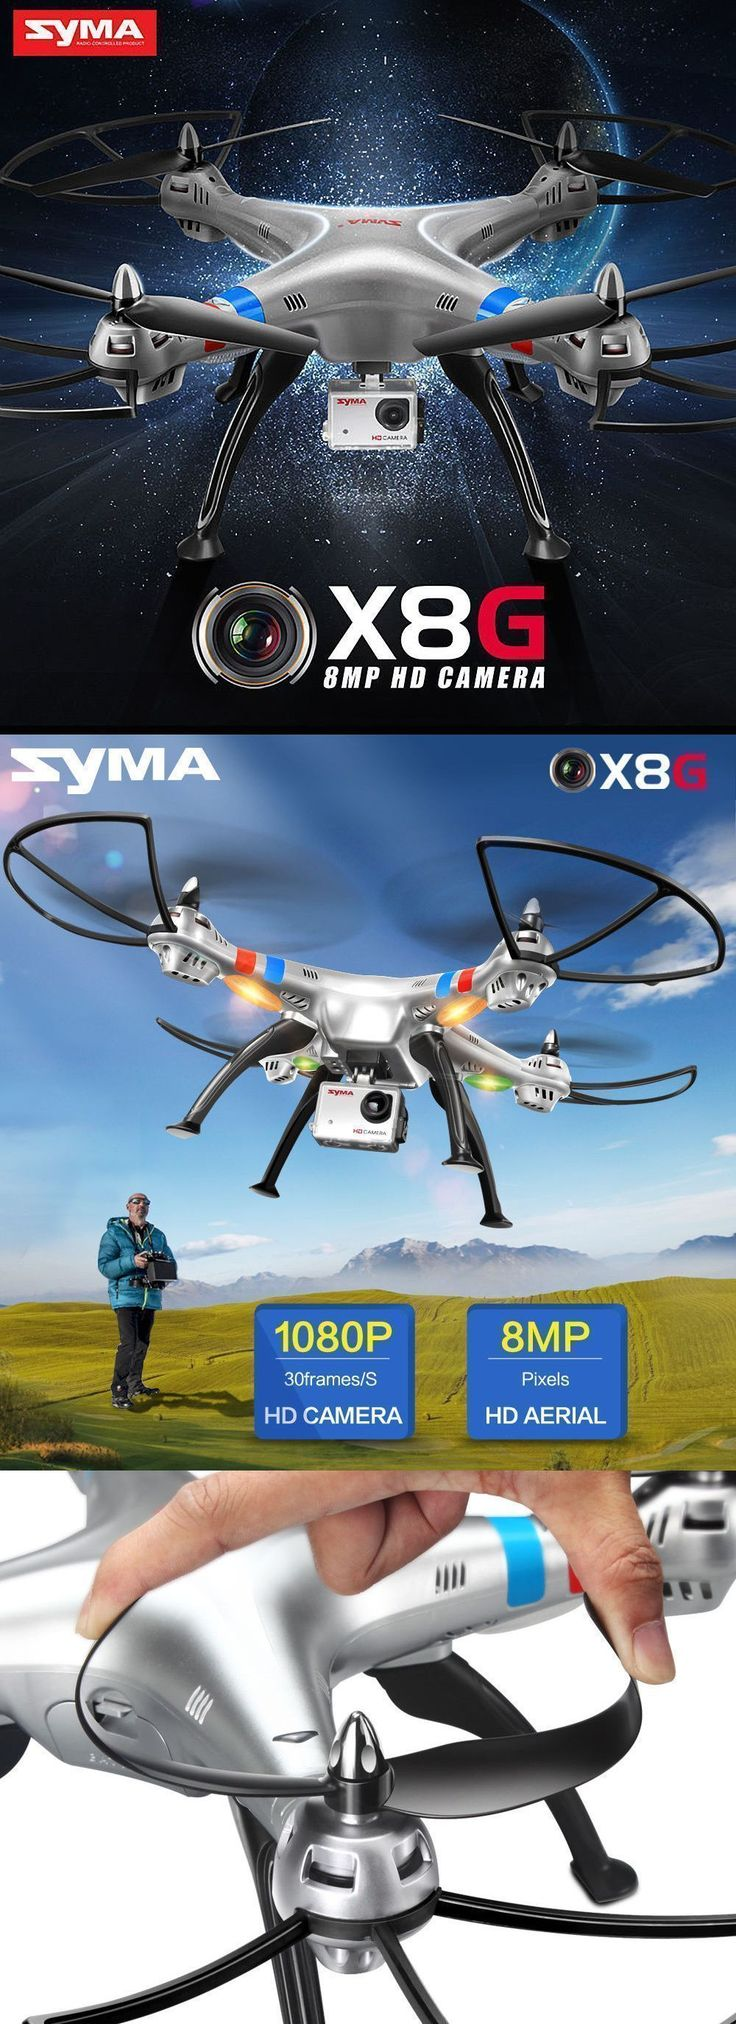 Syma X8G 2.4Ghz 4CH 6-Axis Gyro 8MP HD Camera RC #quadcopter Drone GoPro Style | drone | syma | drone with camera | drone camera | drones for sale | dron | camera drone | best drones | rc drone | quadcopter with camera | best drones with camera | rc quadcopter | gopro drone | best camera drone | best quadcopter | quadcopter drone | quadcopter | #droneswithcamera